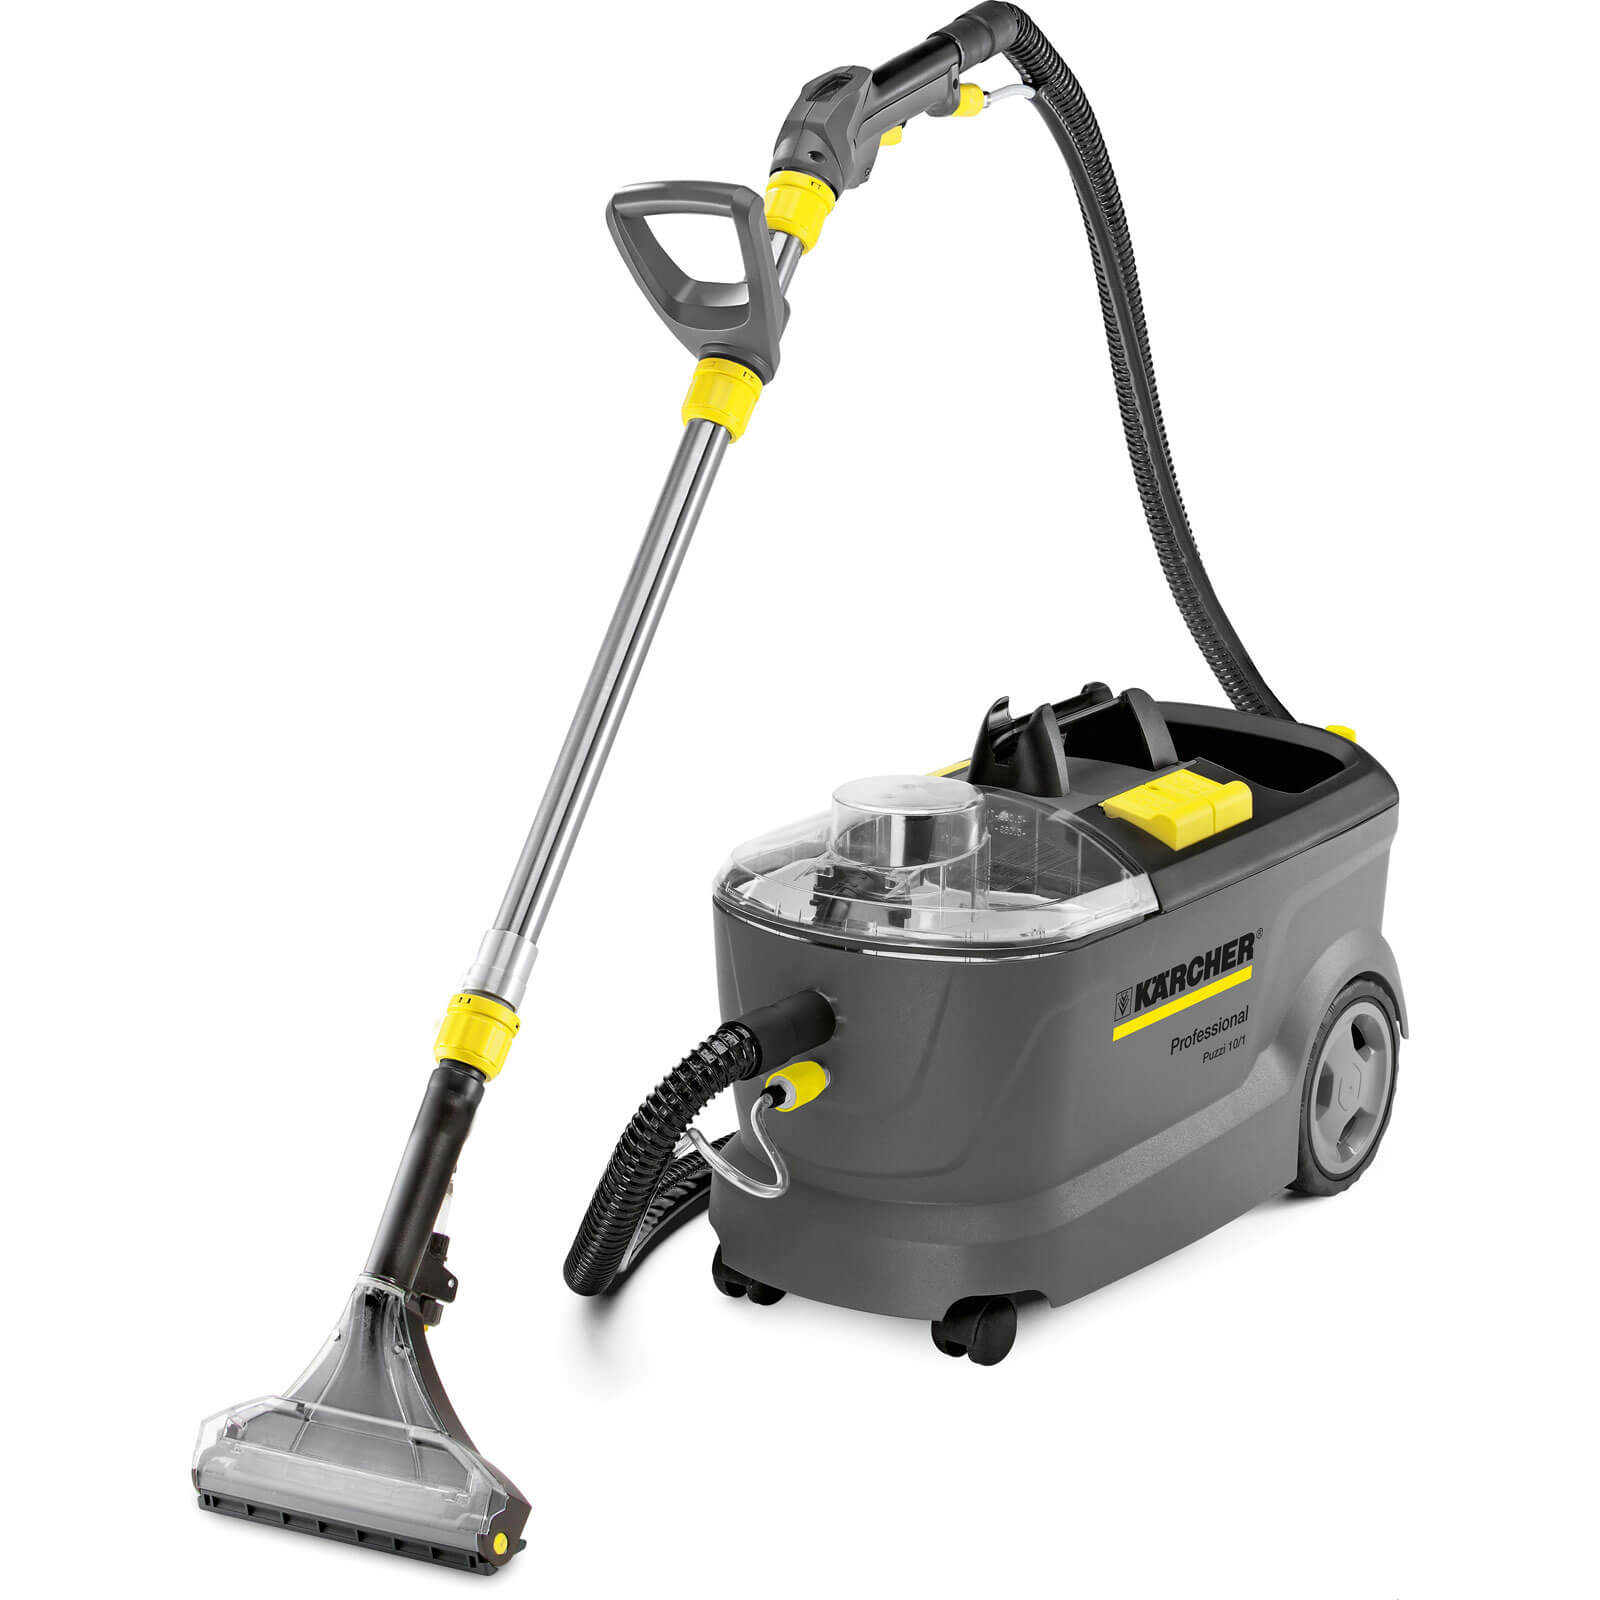 Karcher PUZZI 101 Professional Spray Extraction Carpet & Upholstery Cleaner 240v